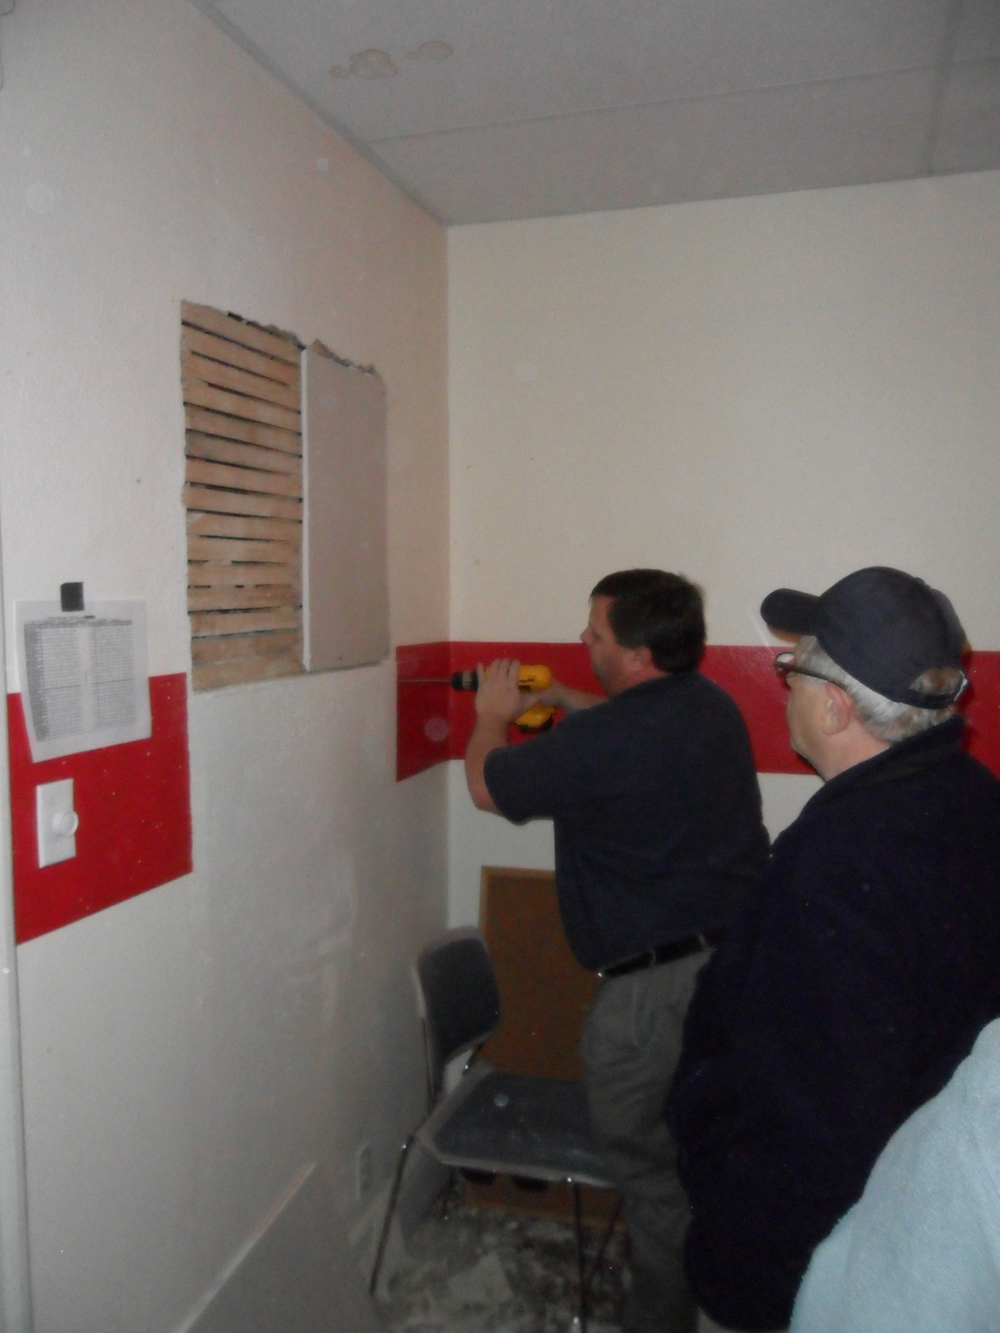 Jeff Damcott (L) and Mr. John Damcott